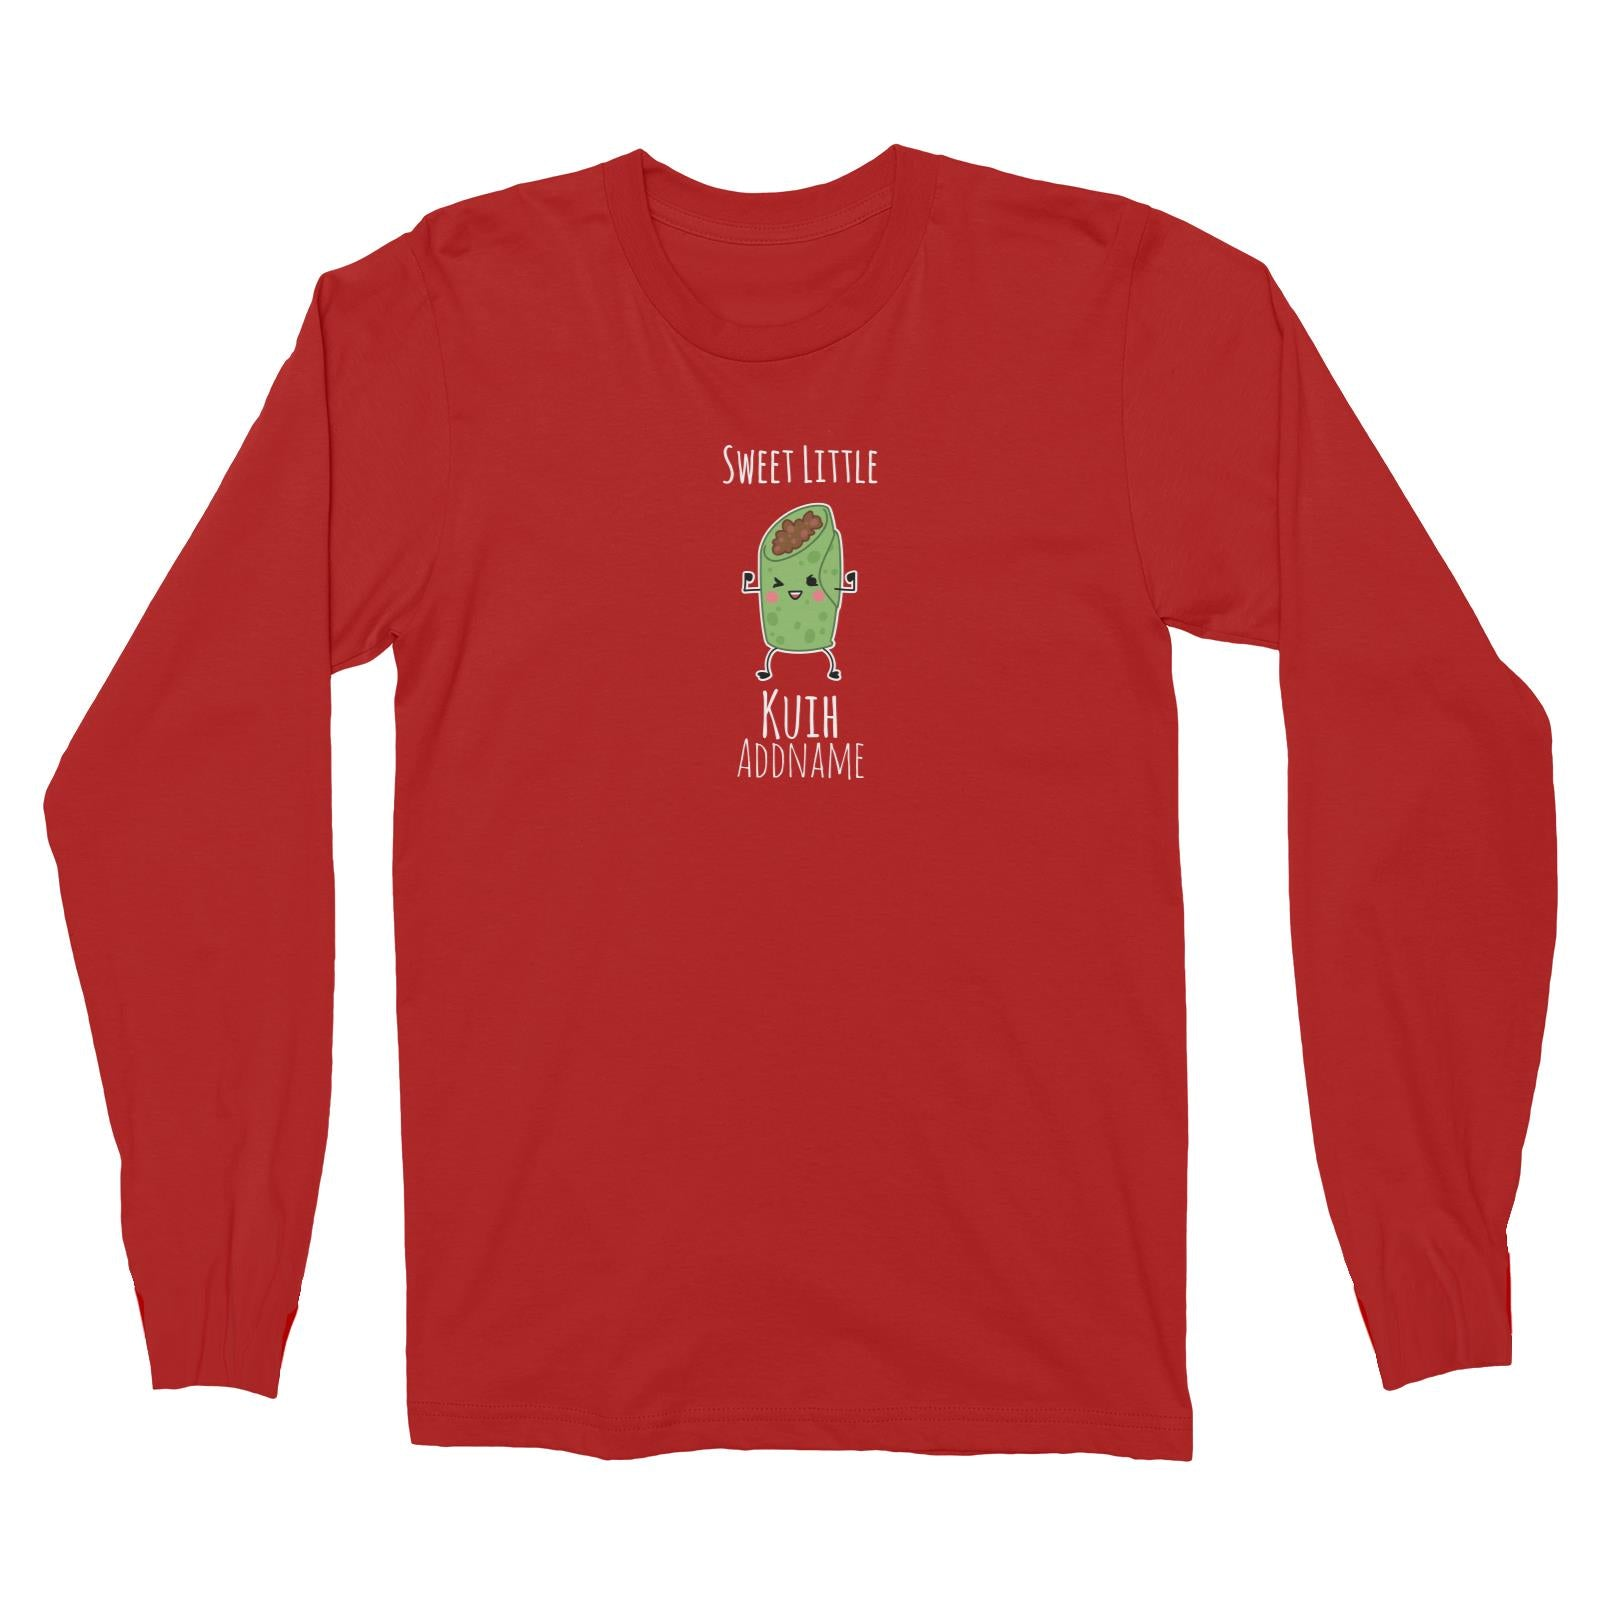 Raya Kuih Sweet 2 Sweet Little Kuih Addname Long Sleeve Unisex T-Shirt